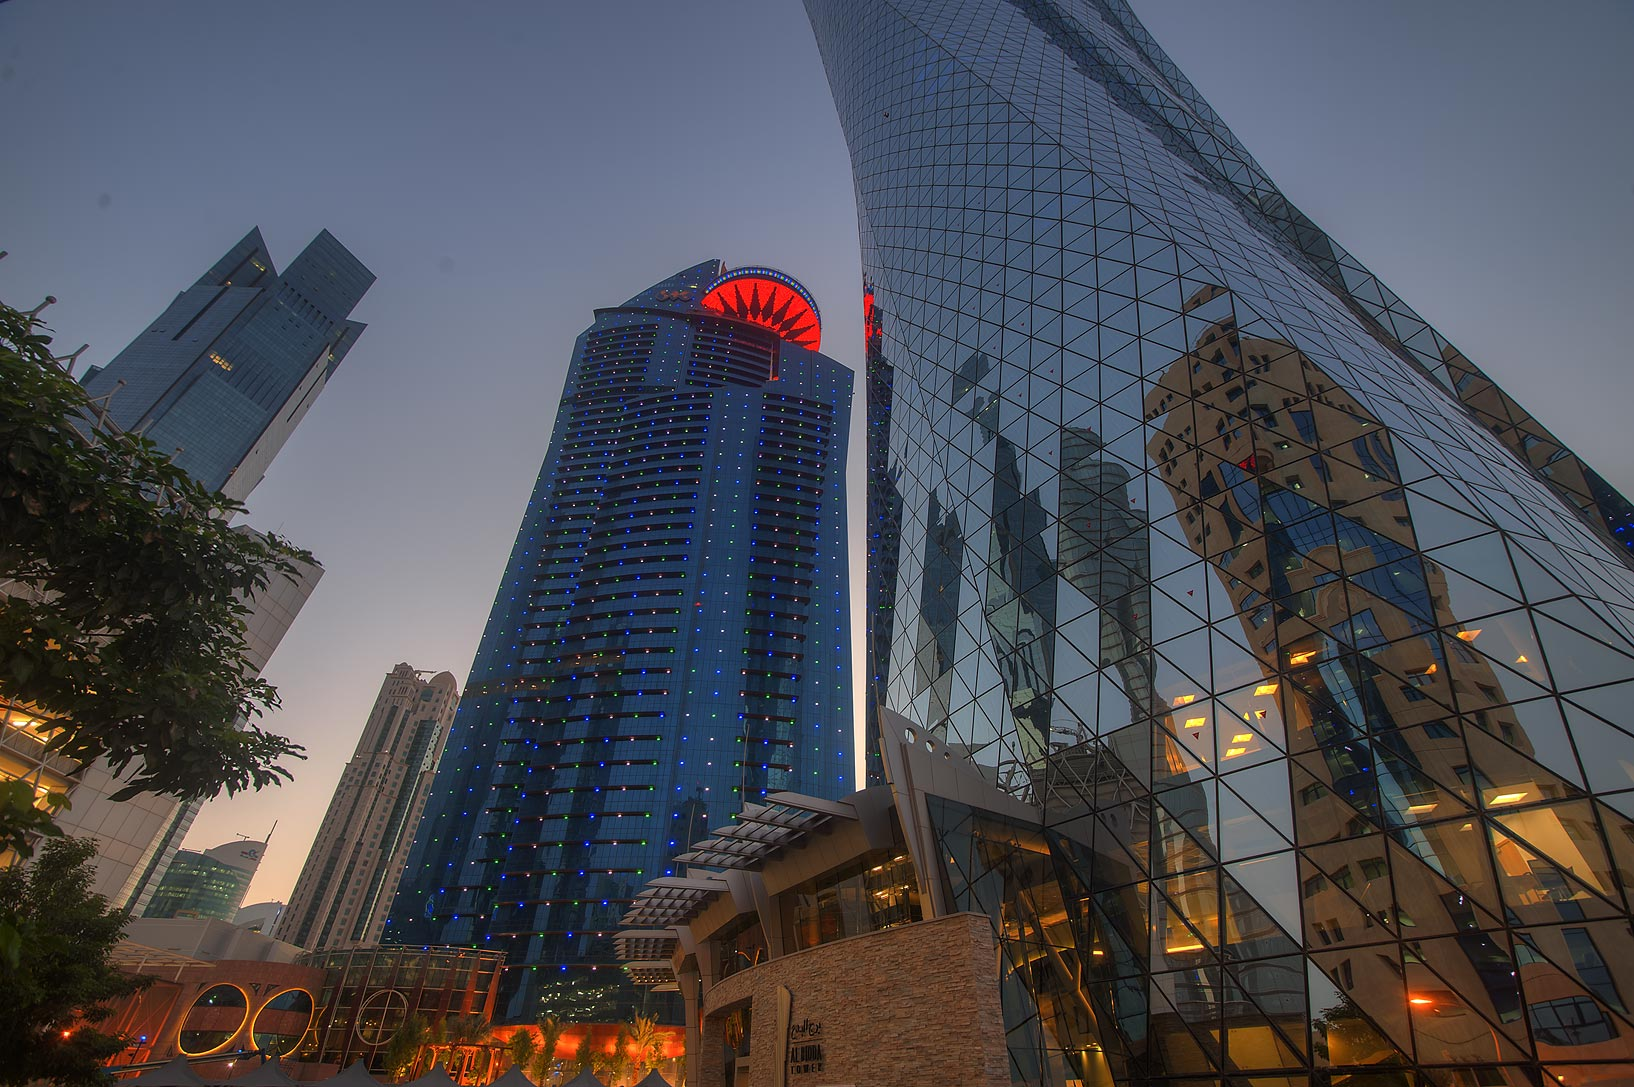 WTC and Al Bidda towers in West Bay. Doha, Qatar